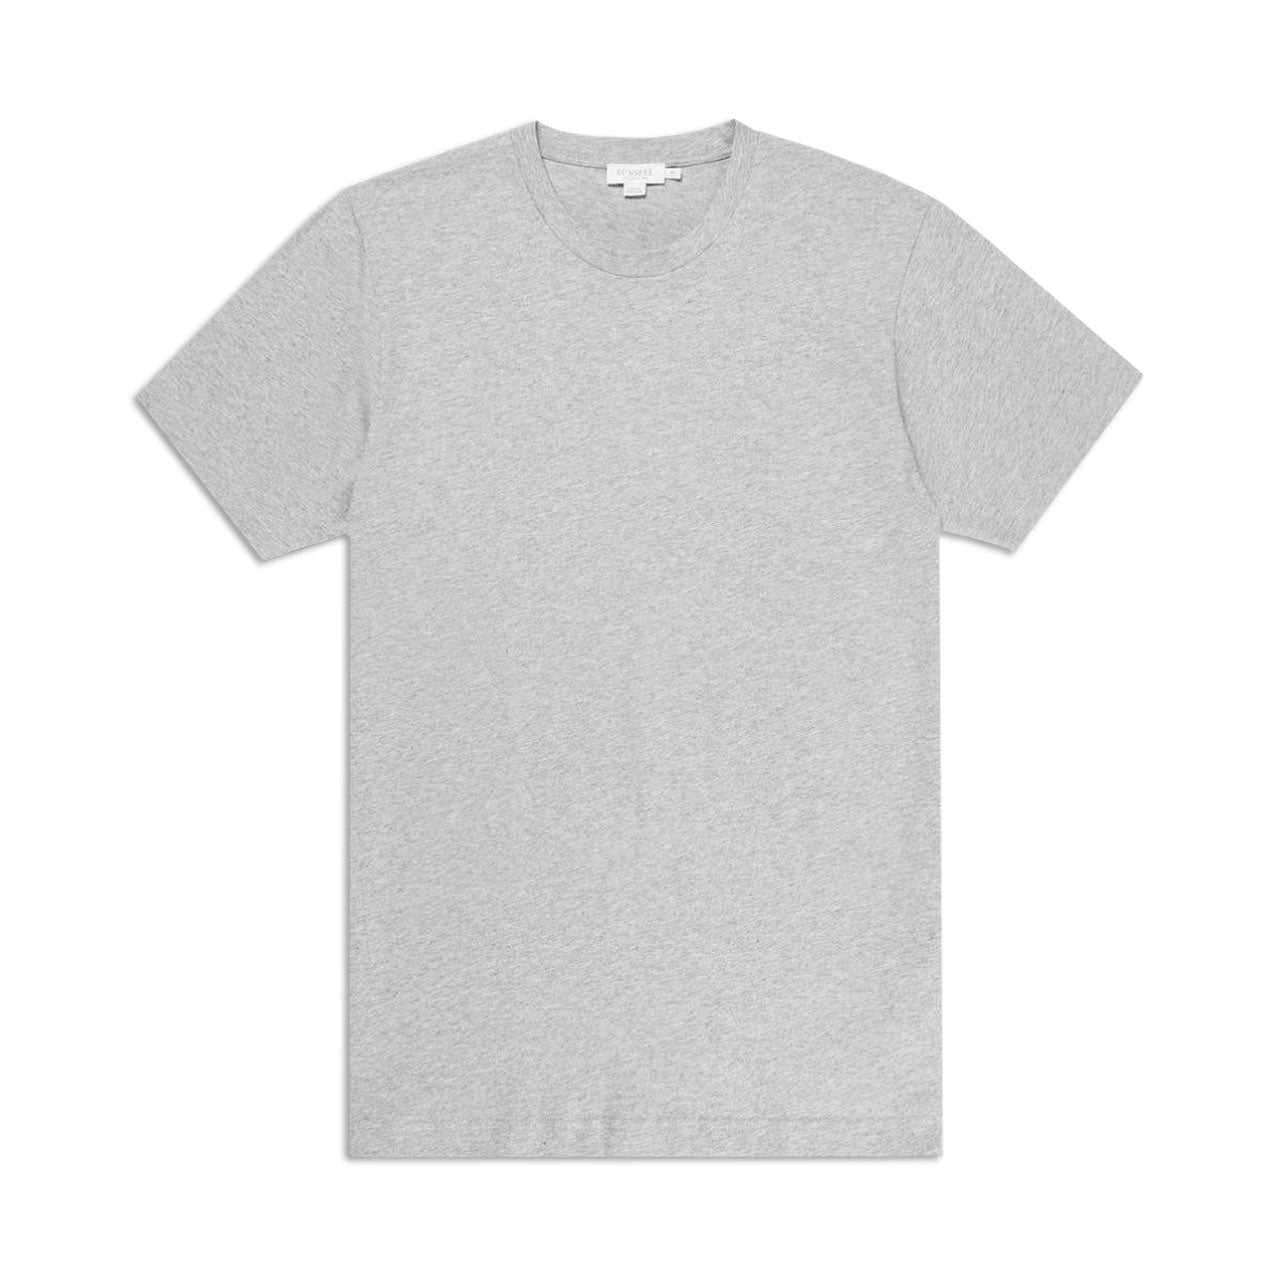 Sunspel Riviera T-Shirt